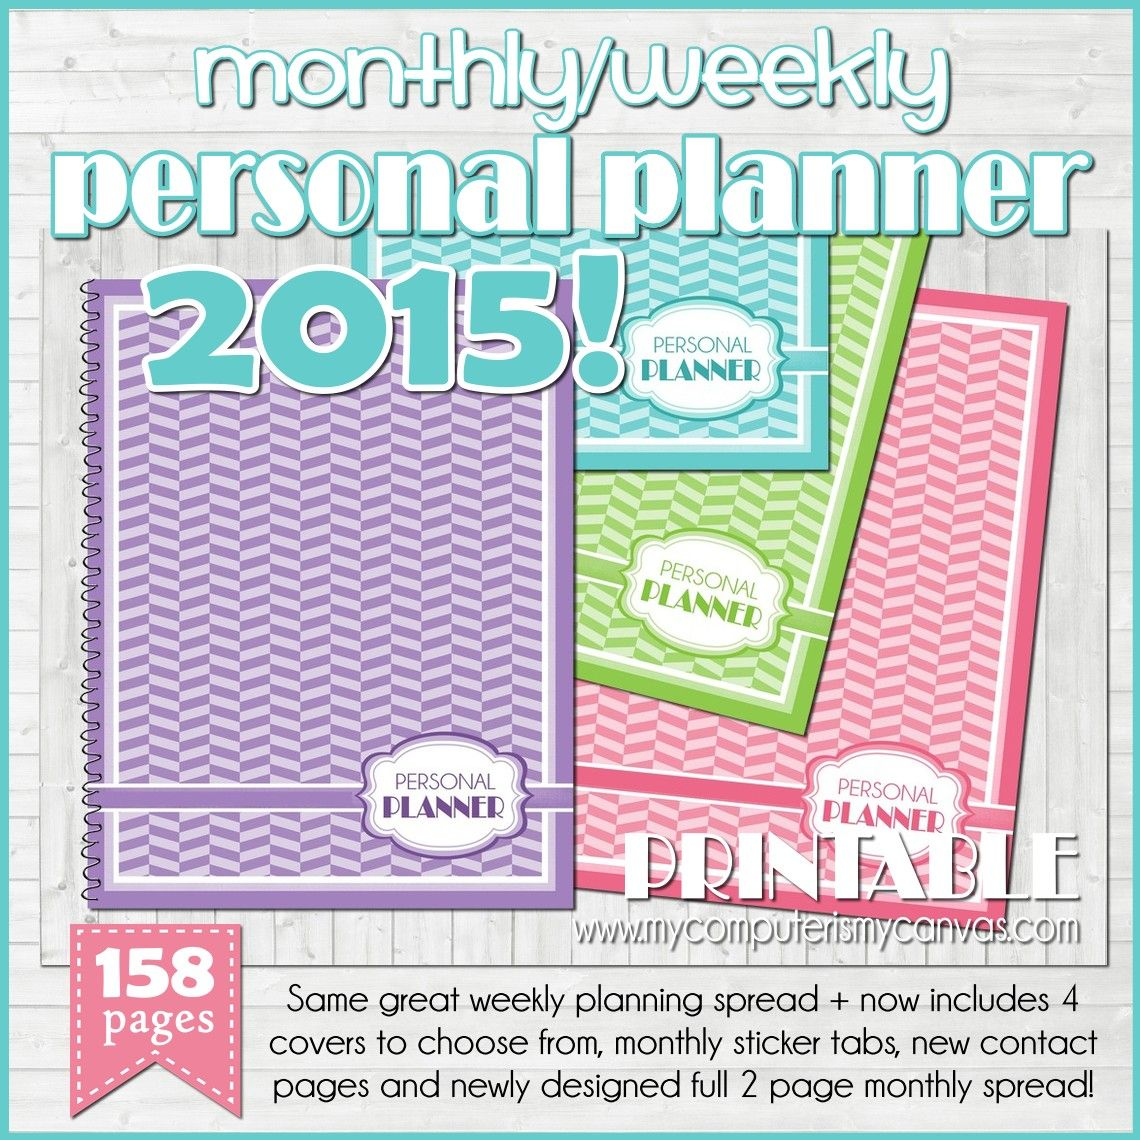 Printable Monthly Planner 2015: Printable 2015 Planner... Perfect For Any Busy Lifestyle